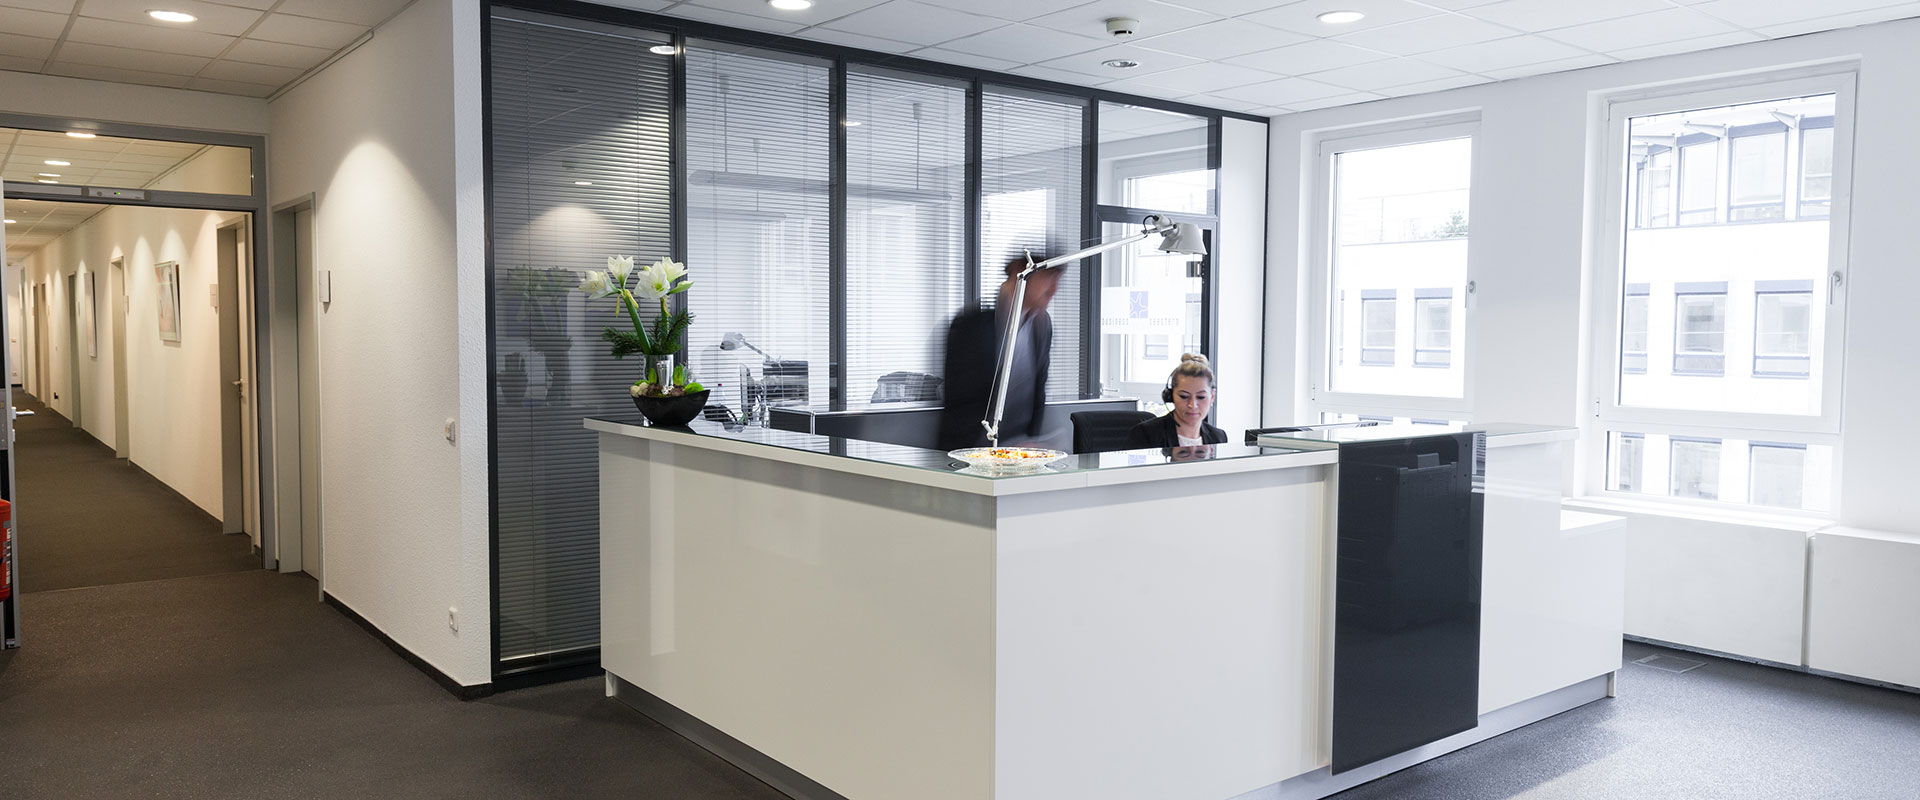 Empfang im Business Center Seestern